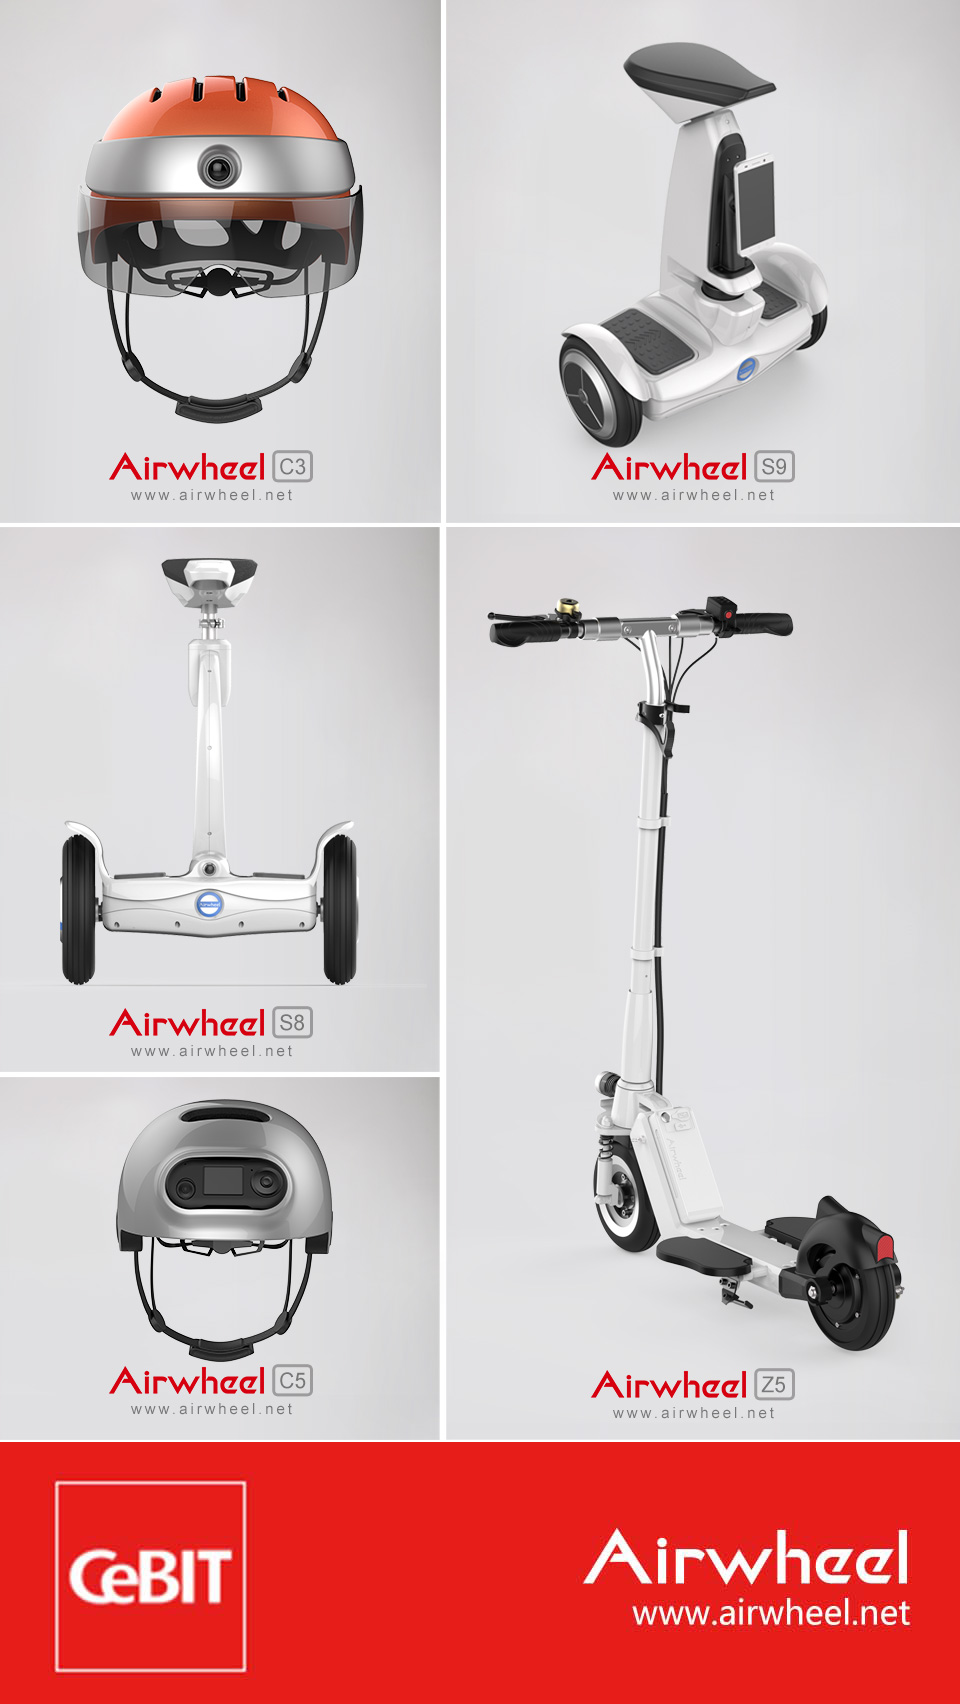 new 2-wheeled electric scooter Airwheel Z5